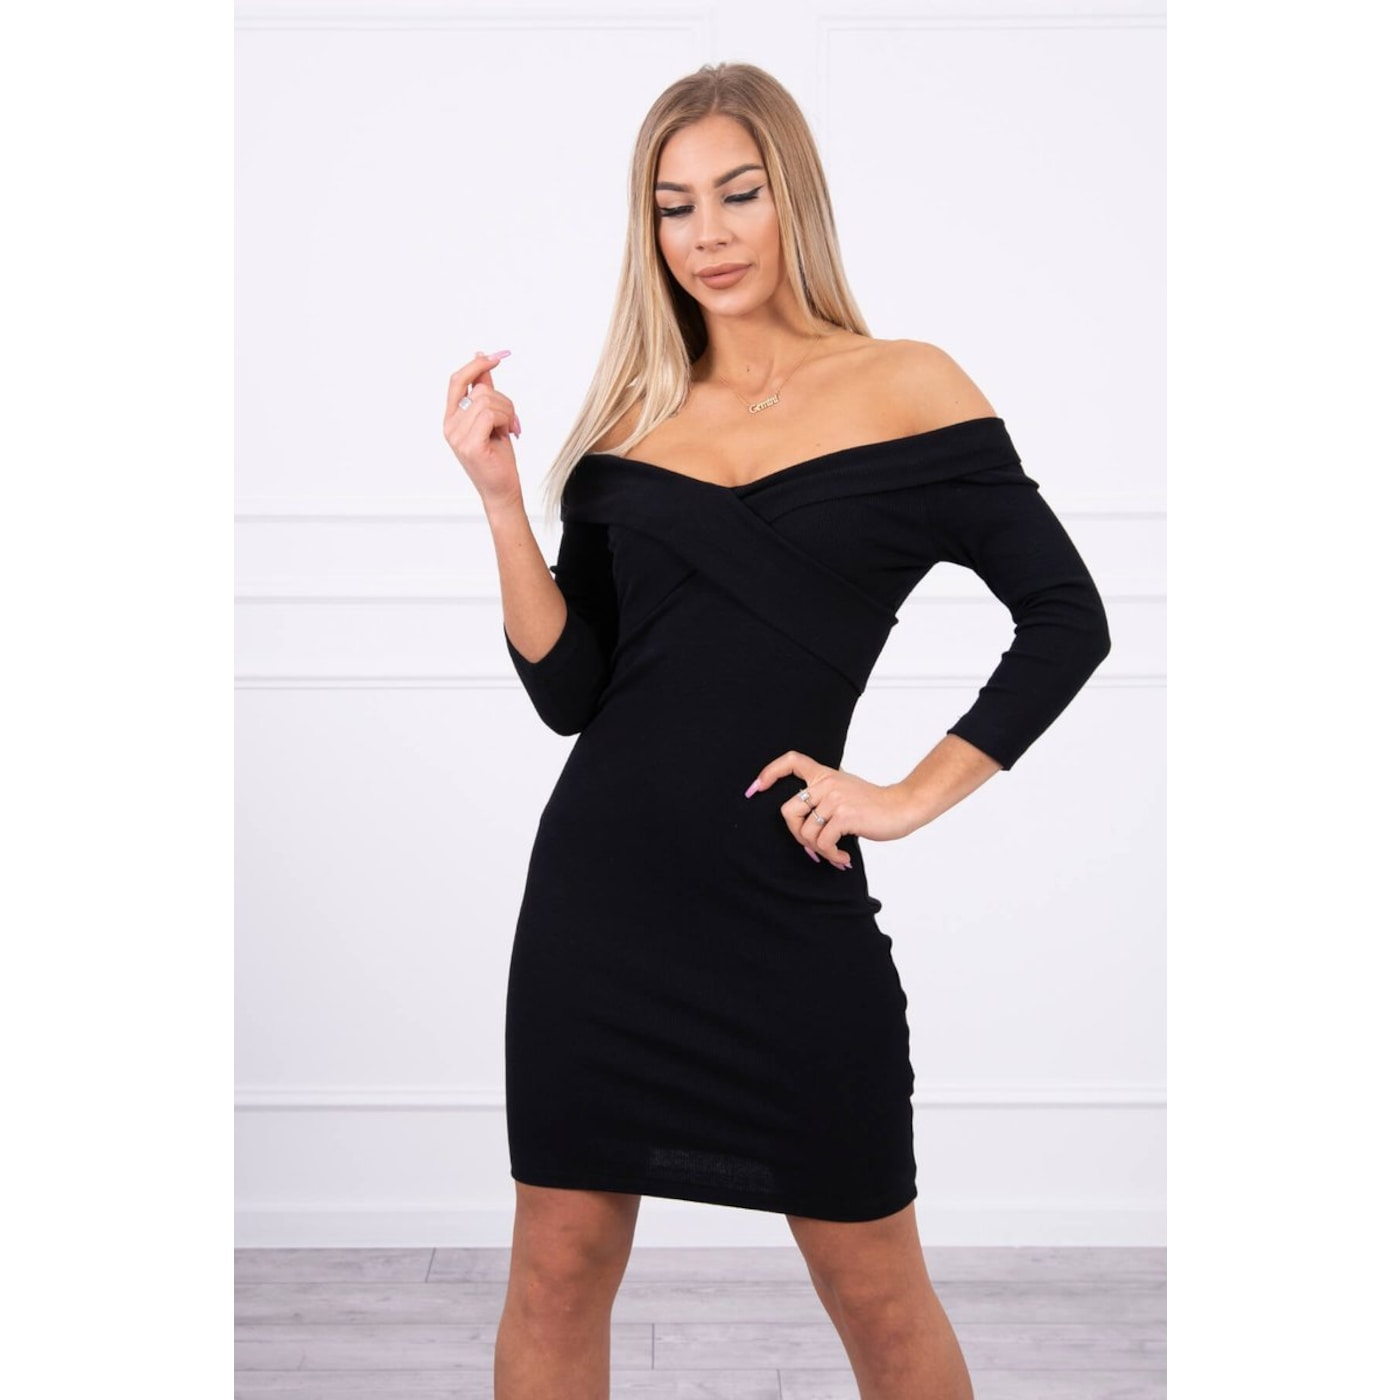 Dress fitted with a V-neck black